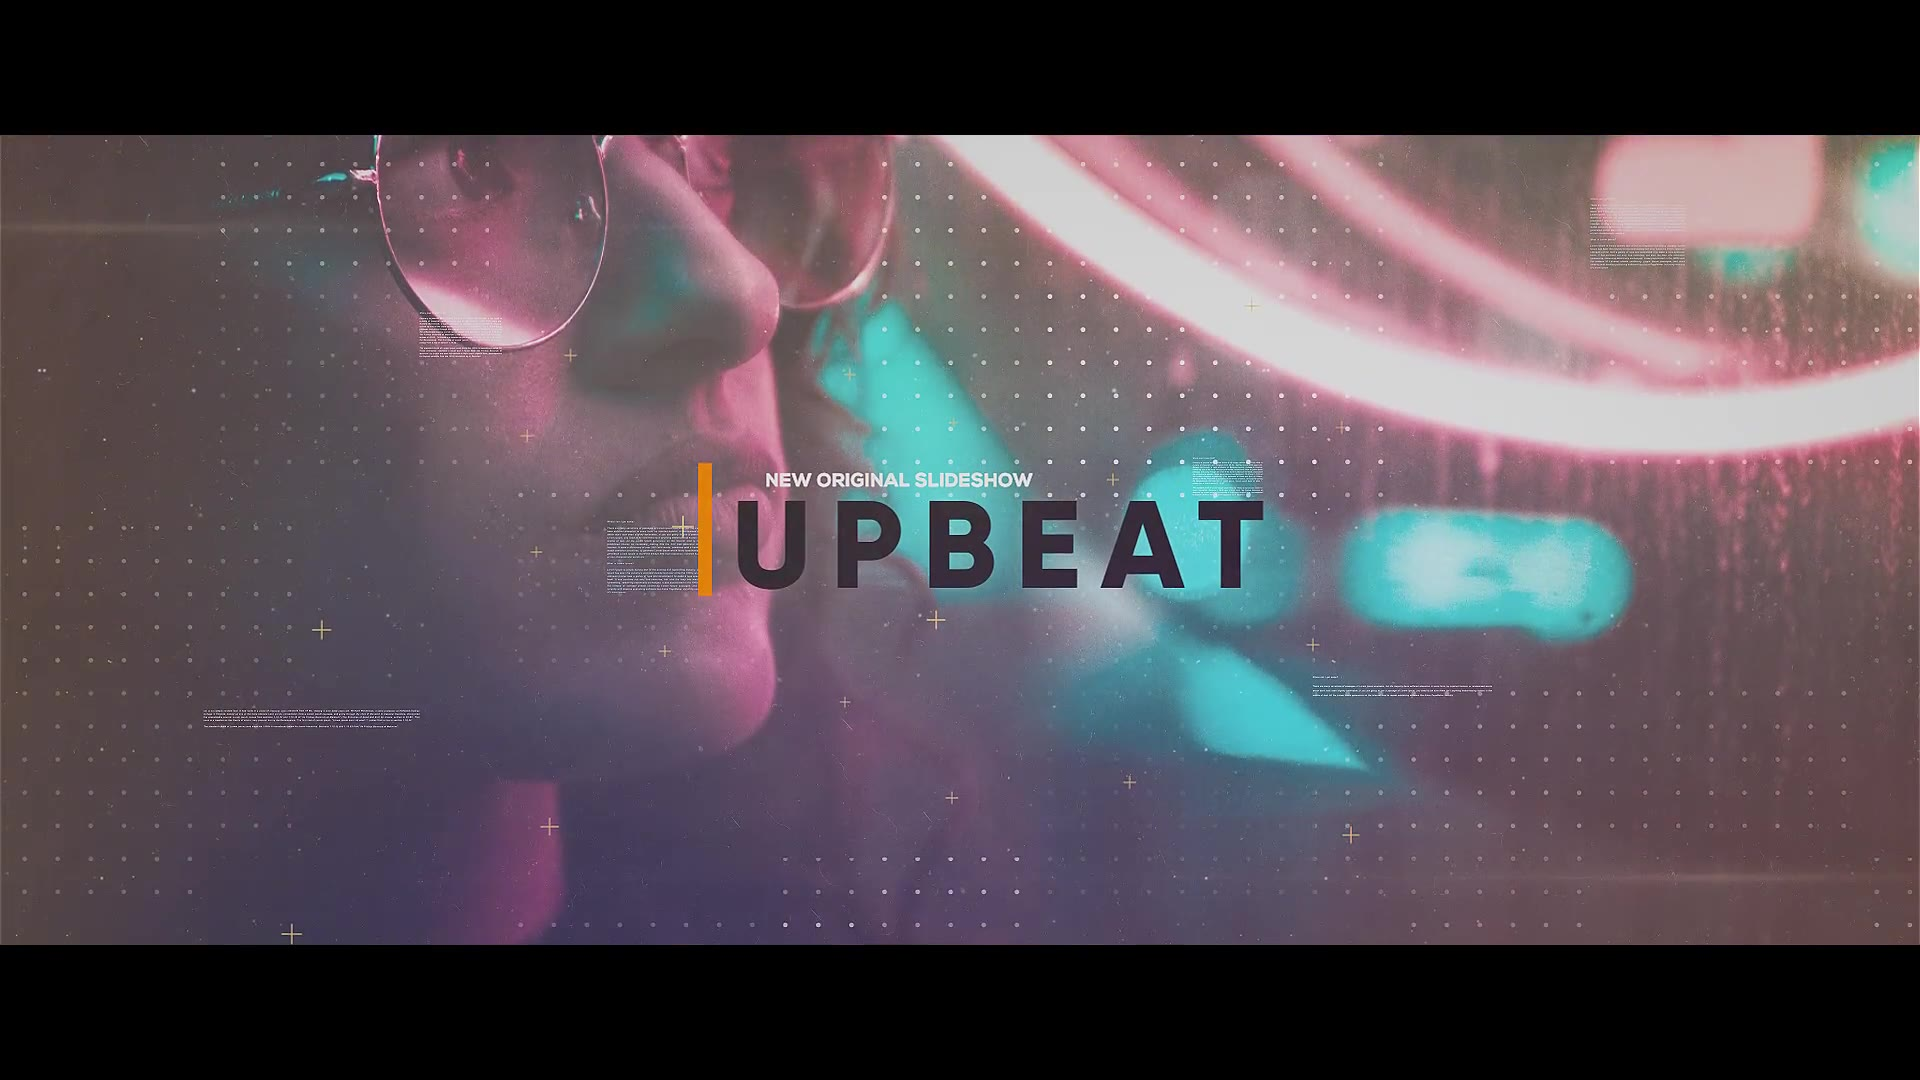 Upbeat Lounge Opener Slideshow - Download Videohive 21983233